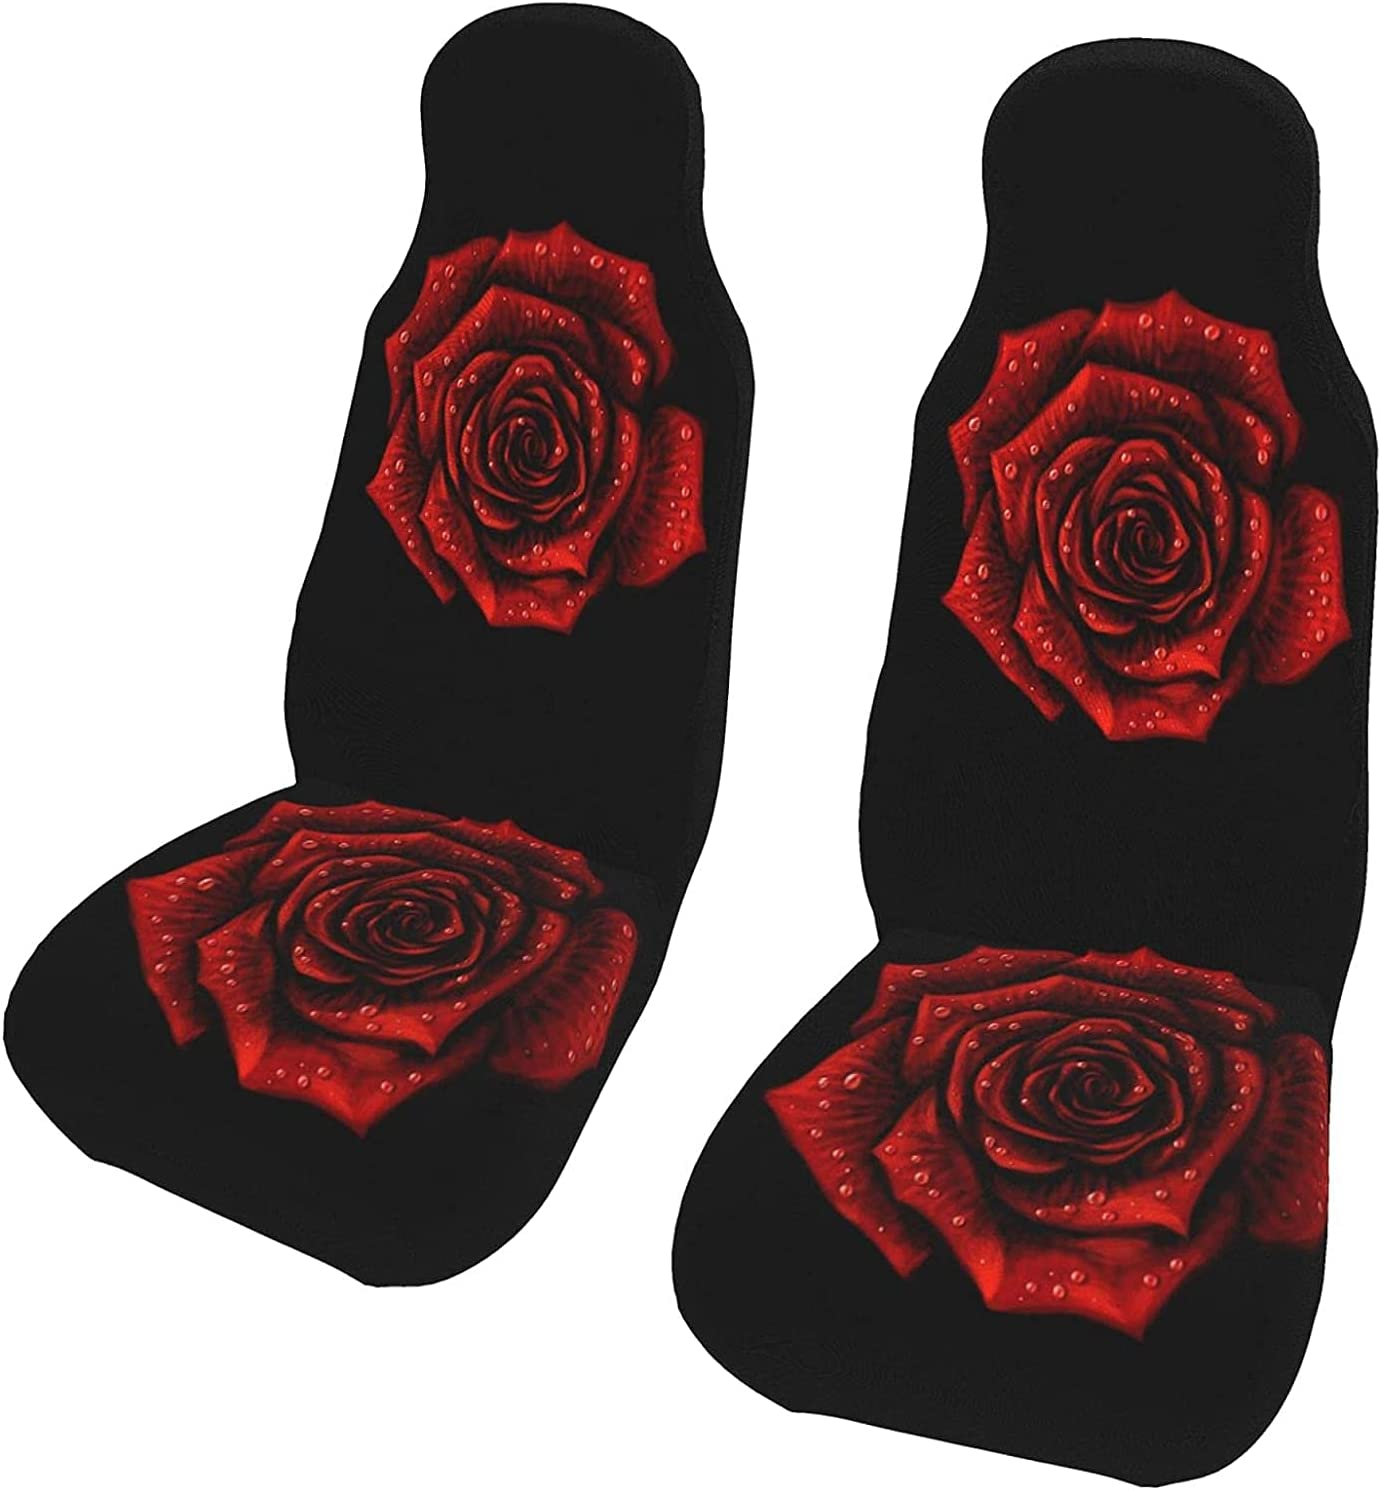 Red Rose Recommended with New life Drops 2 Pcs Covers Car Seat Vehicle Set Front